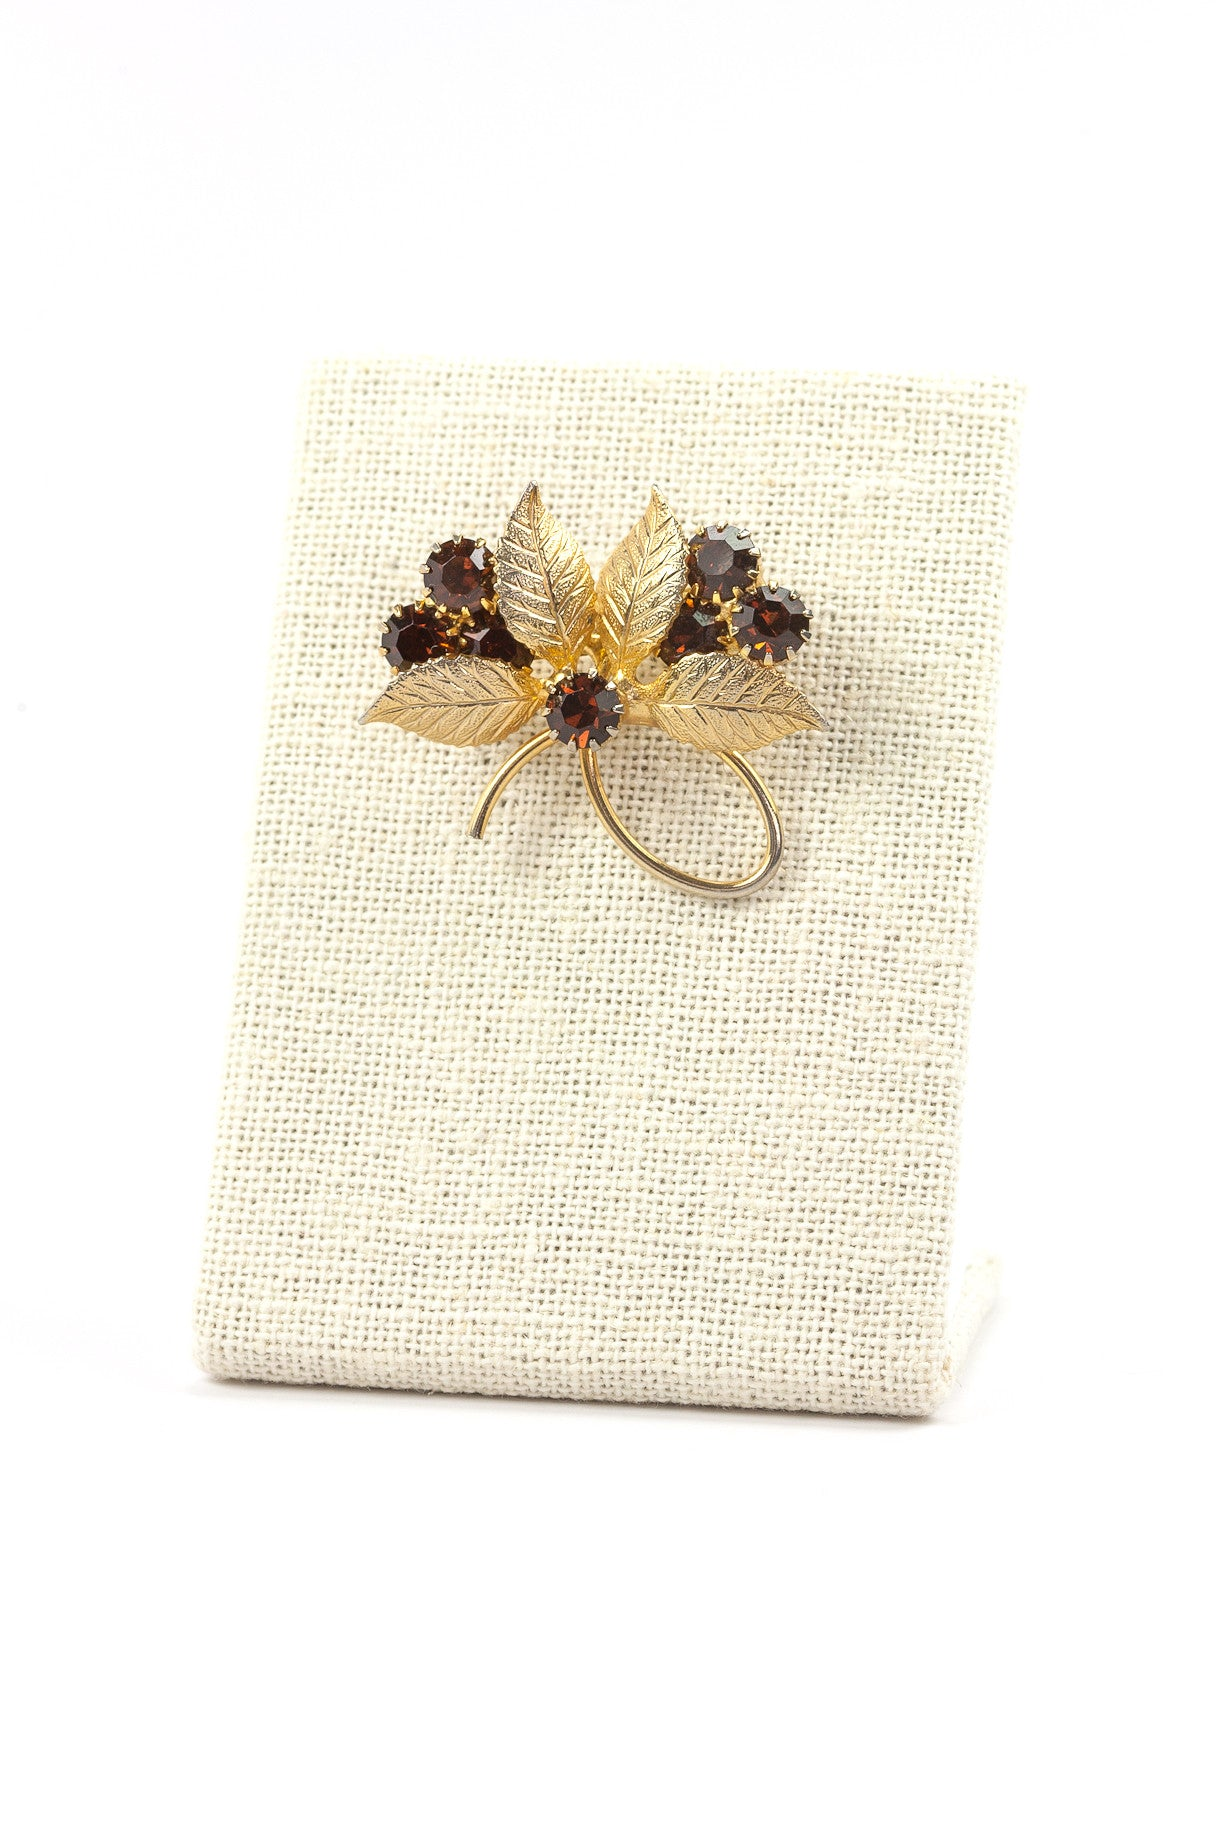 50's__Vintage__Amber Rhinestone Bunches Brooch